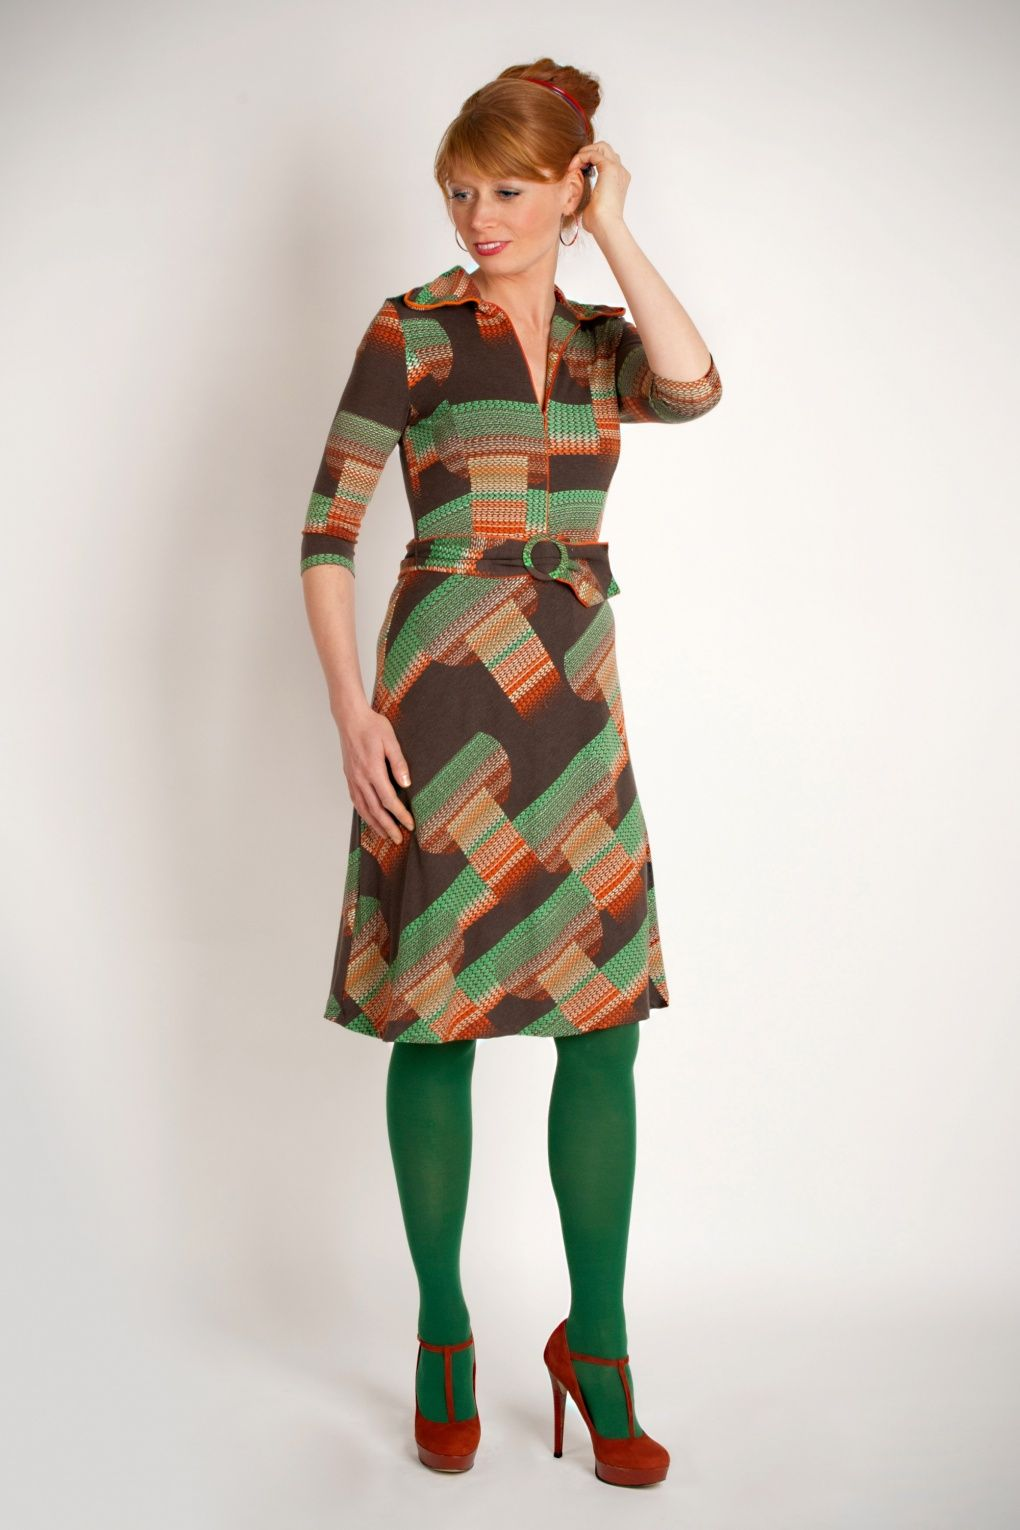 Retro Revolution Where To Find Vintage Clothing In: Wow To Go! 70s Retro A-line Dress In Brown